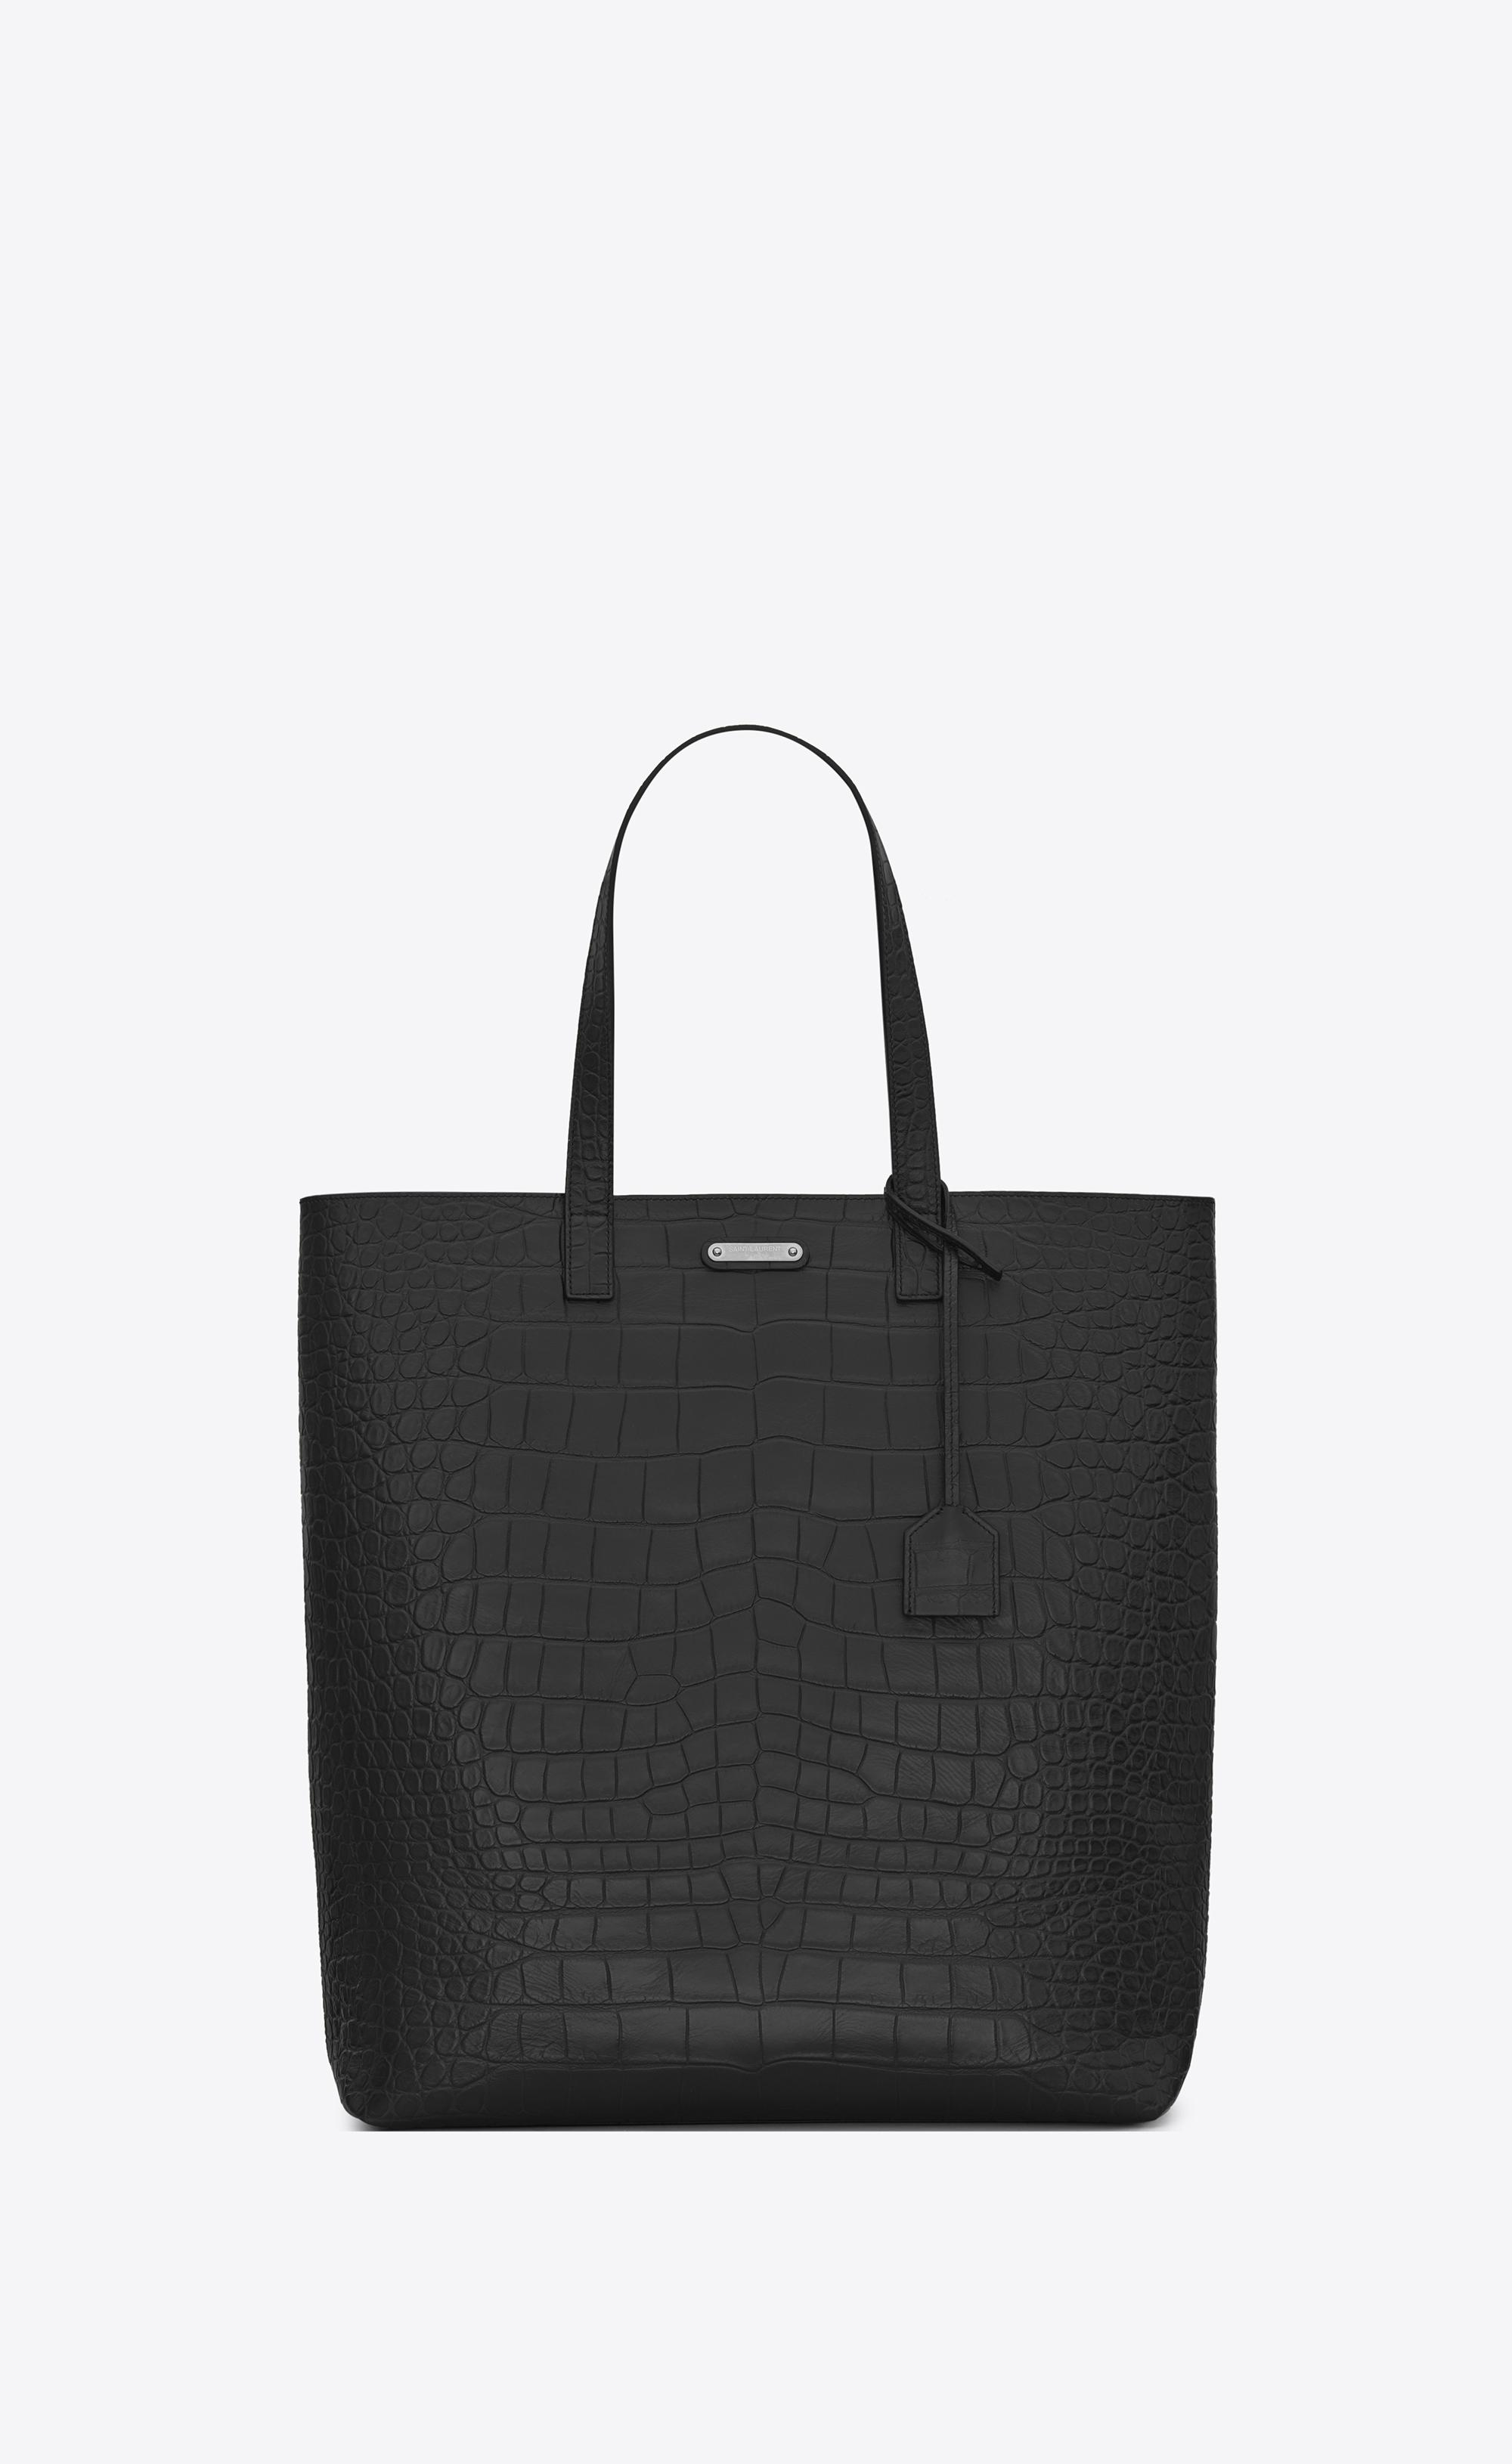 bc51f0332fab Saint Laurent - Black Bold Tote Bag In Crocodile Embossed Leather for Men -  Lyst